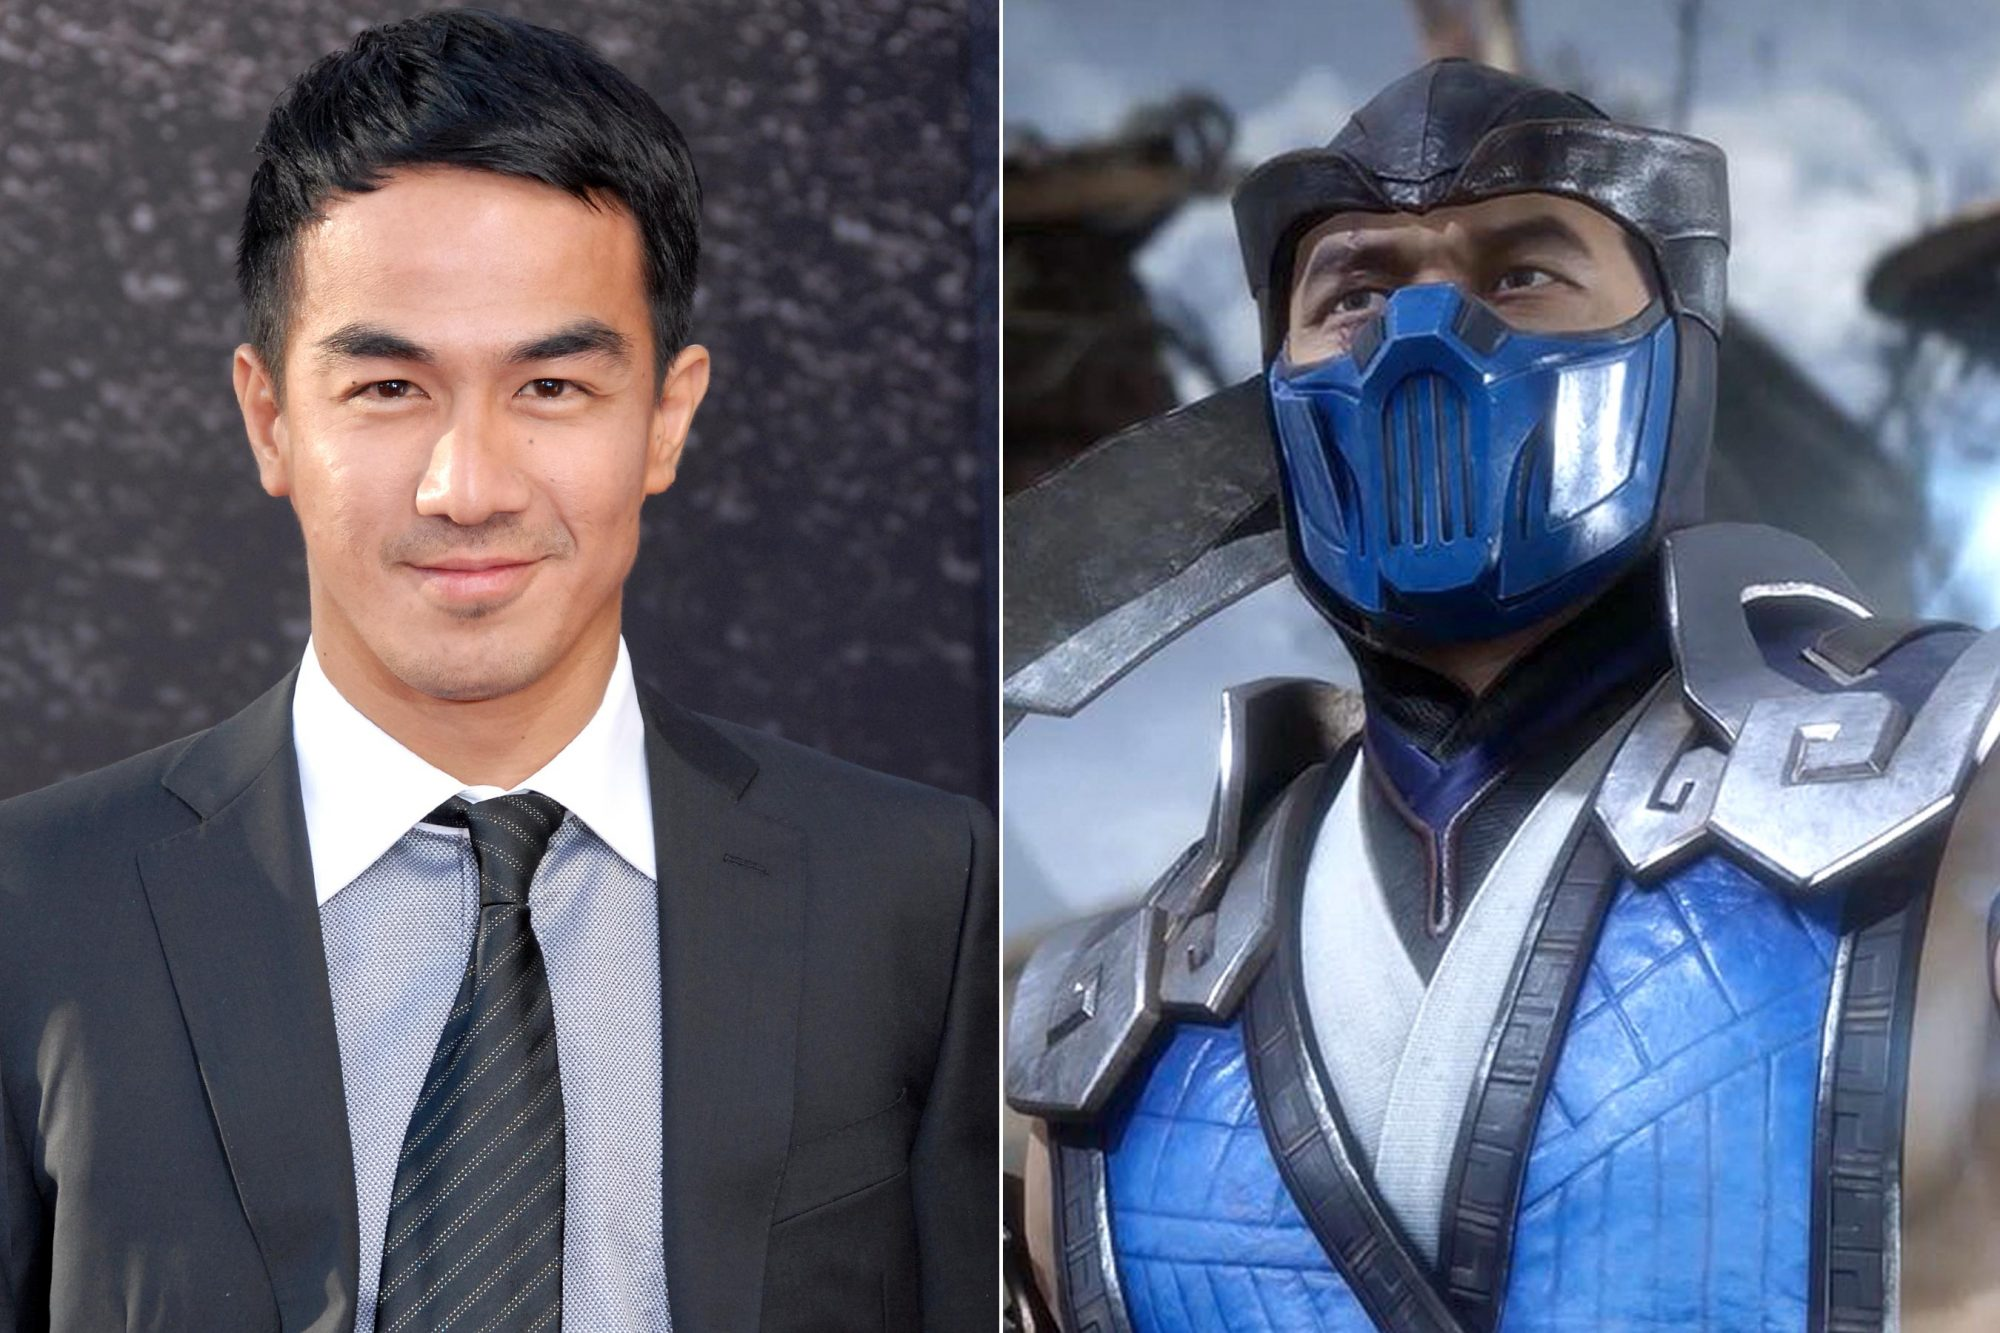 UNIVERSAL CITY, CA - MAY 21: Actor Joe Taslim attends the premiere of 'Fast & Furious 6' at Universal CityWalk on May 21, 2013 in Universal City, California. (Photo by Barry King/FilmMagic) Mortal Kombat 11 Sub-Zero CR: Warner Bros. Interactive Entertainment